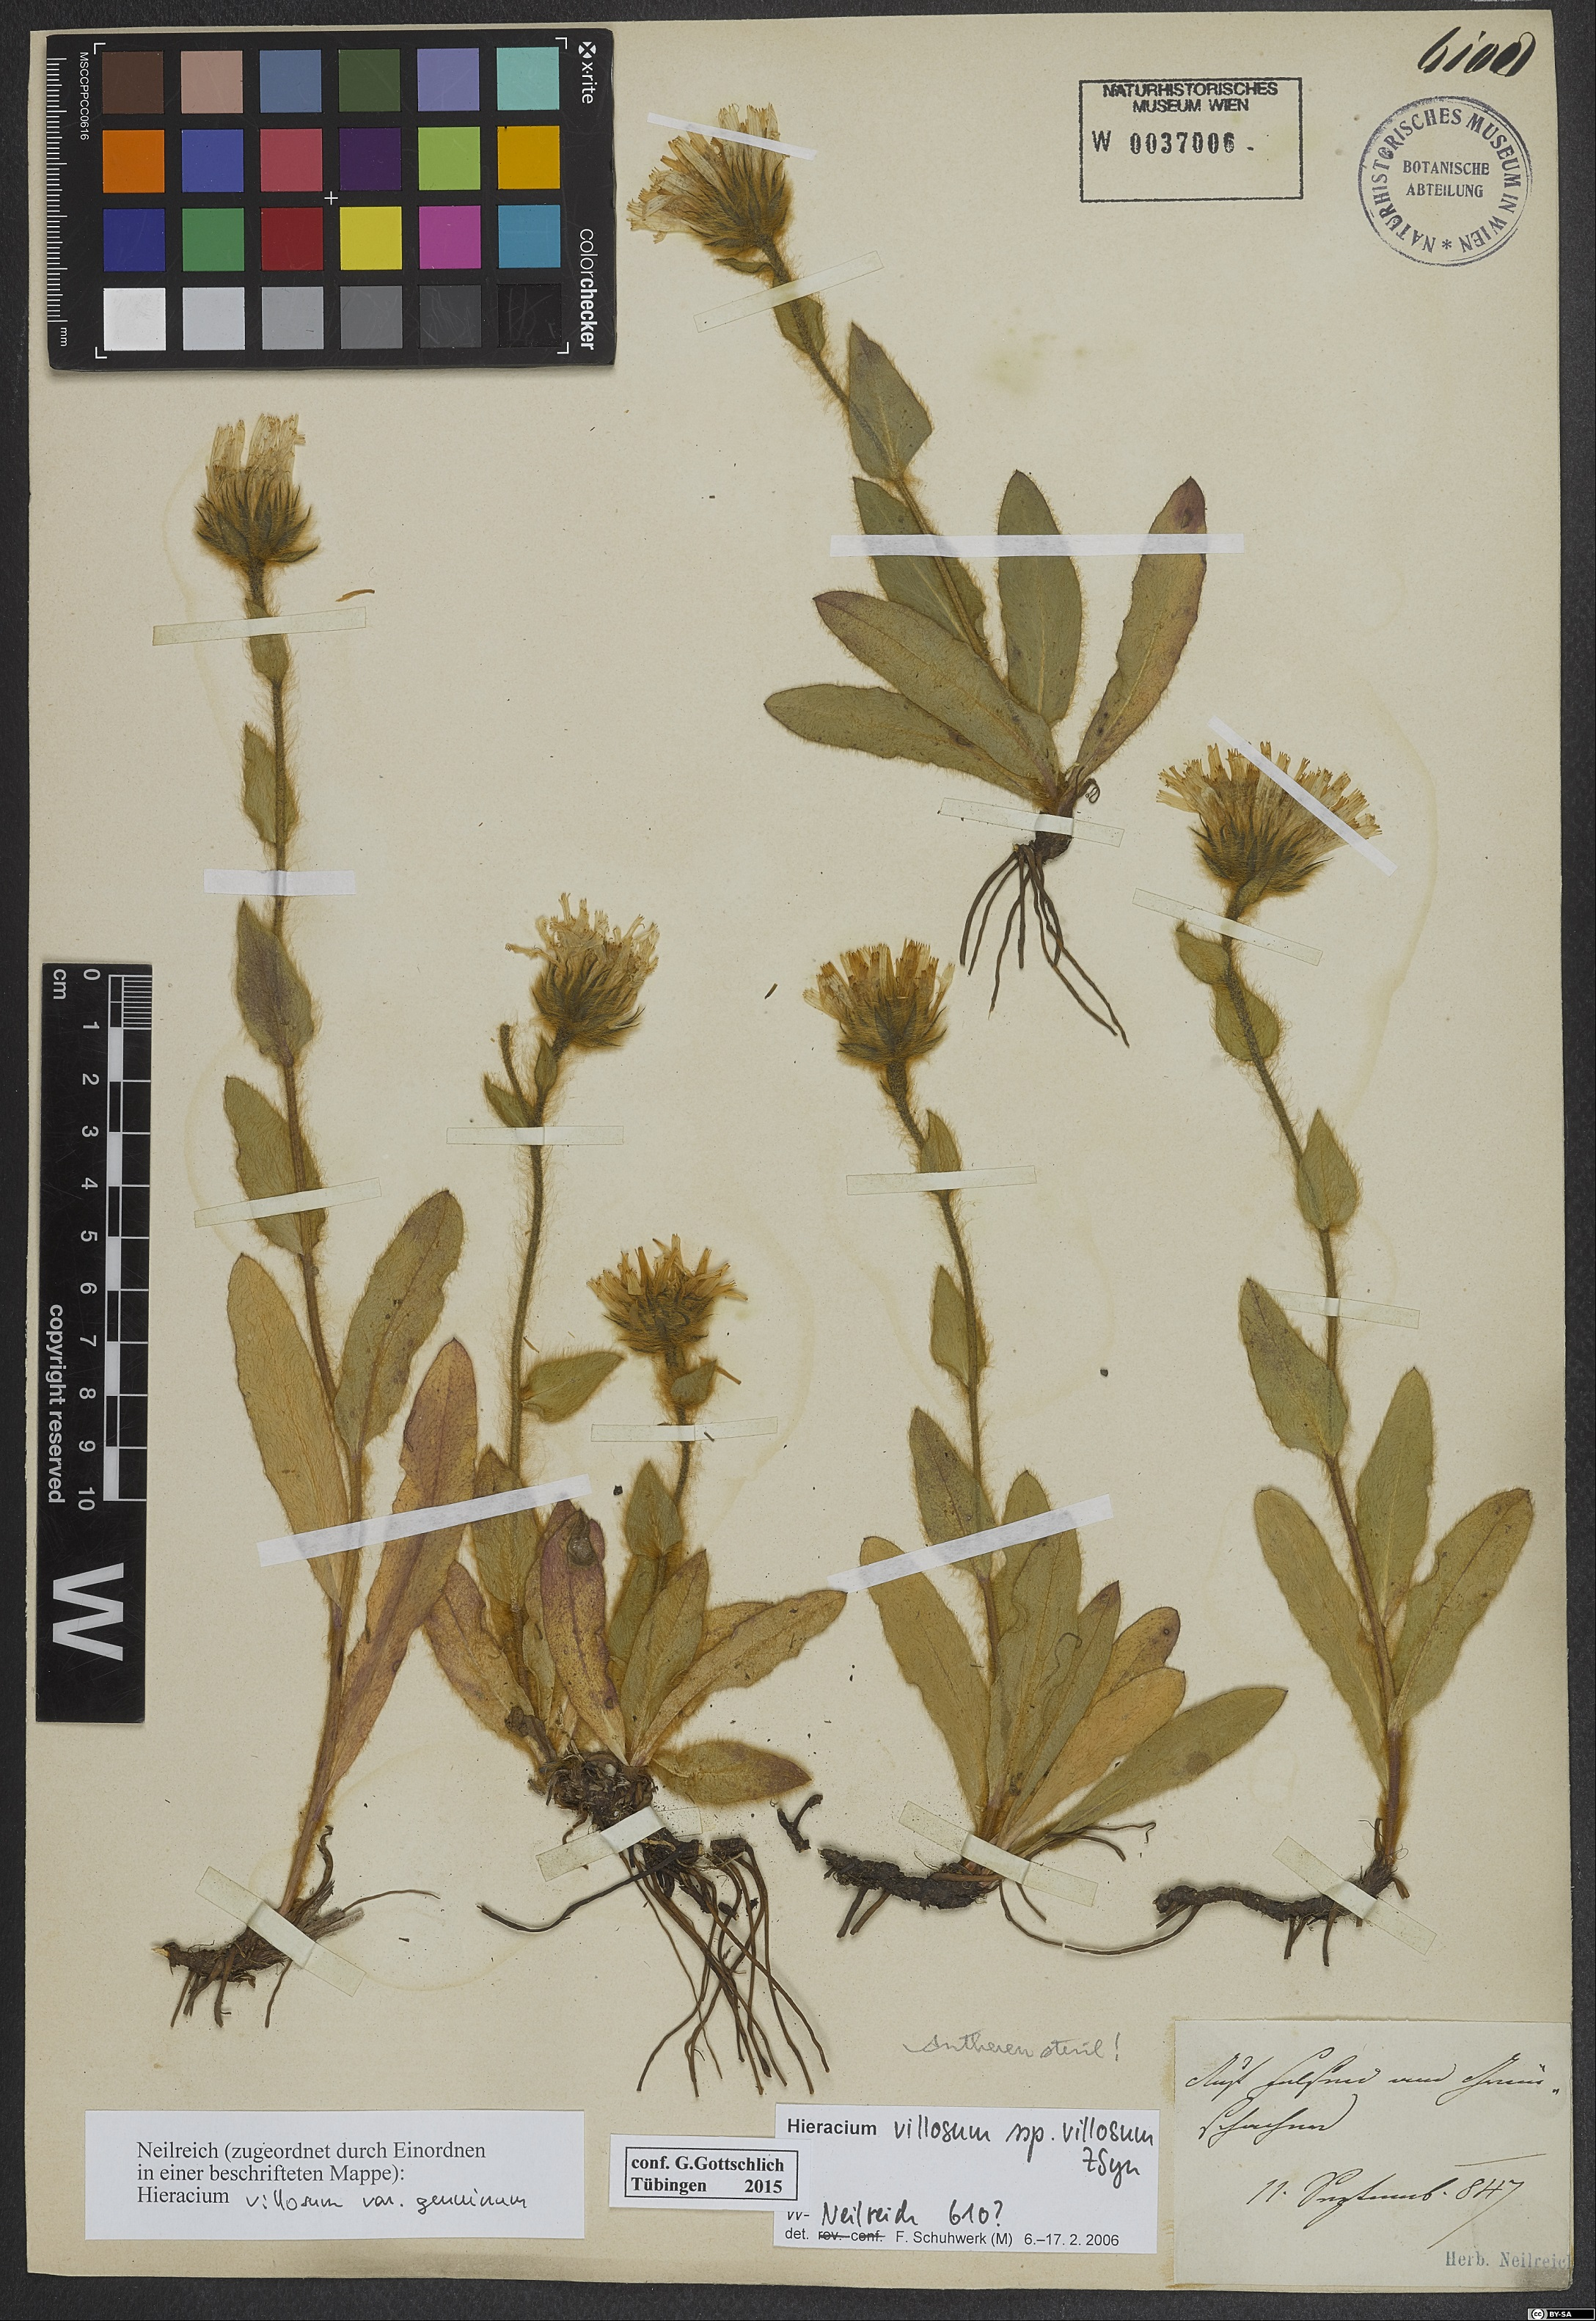 Herbarium: W-Neilreich 0037006  - Source: http://herbarium.univie.ac.at/database/detail.php?ID=1092195<br>by